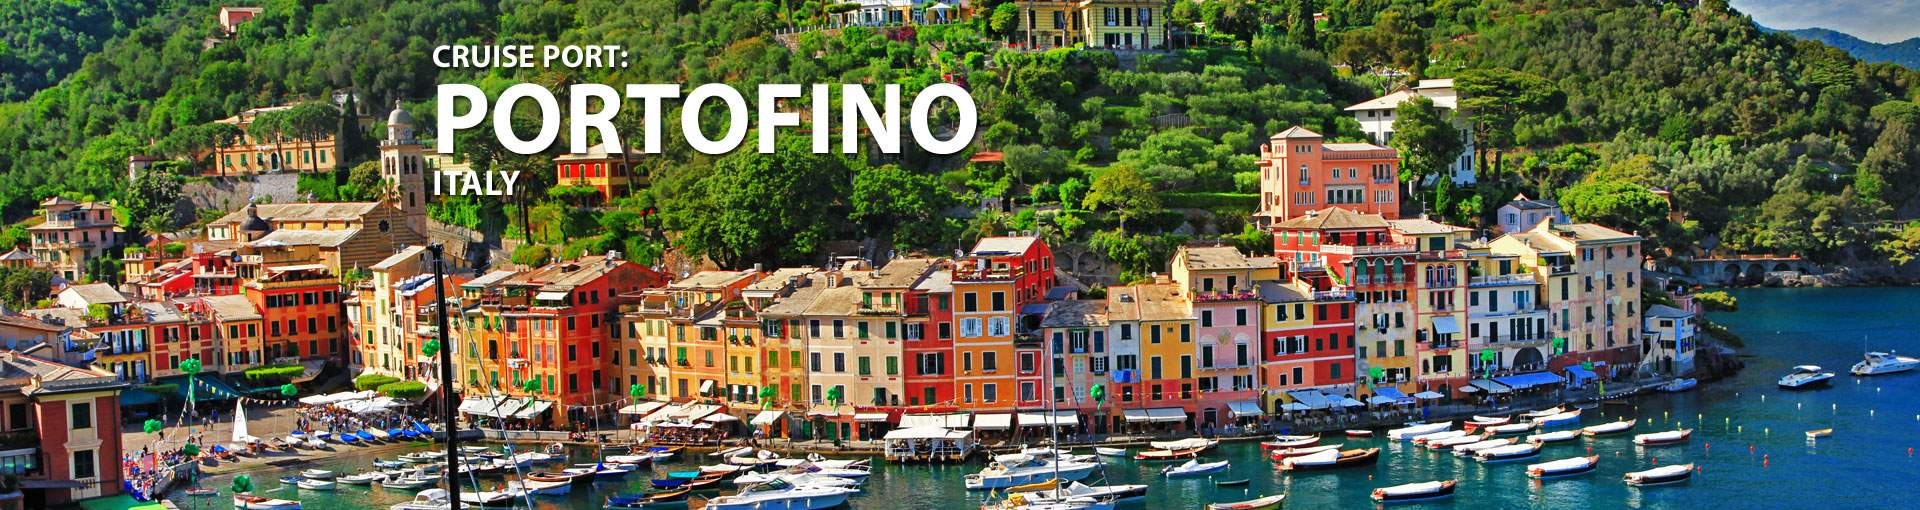 Cruises to Portofino, Italy